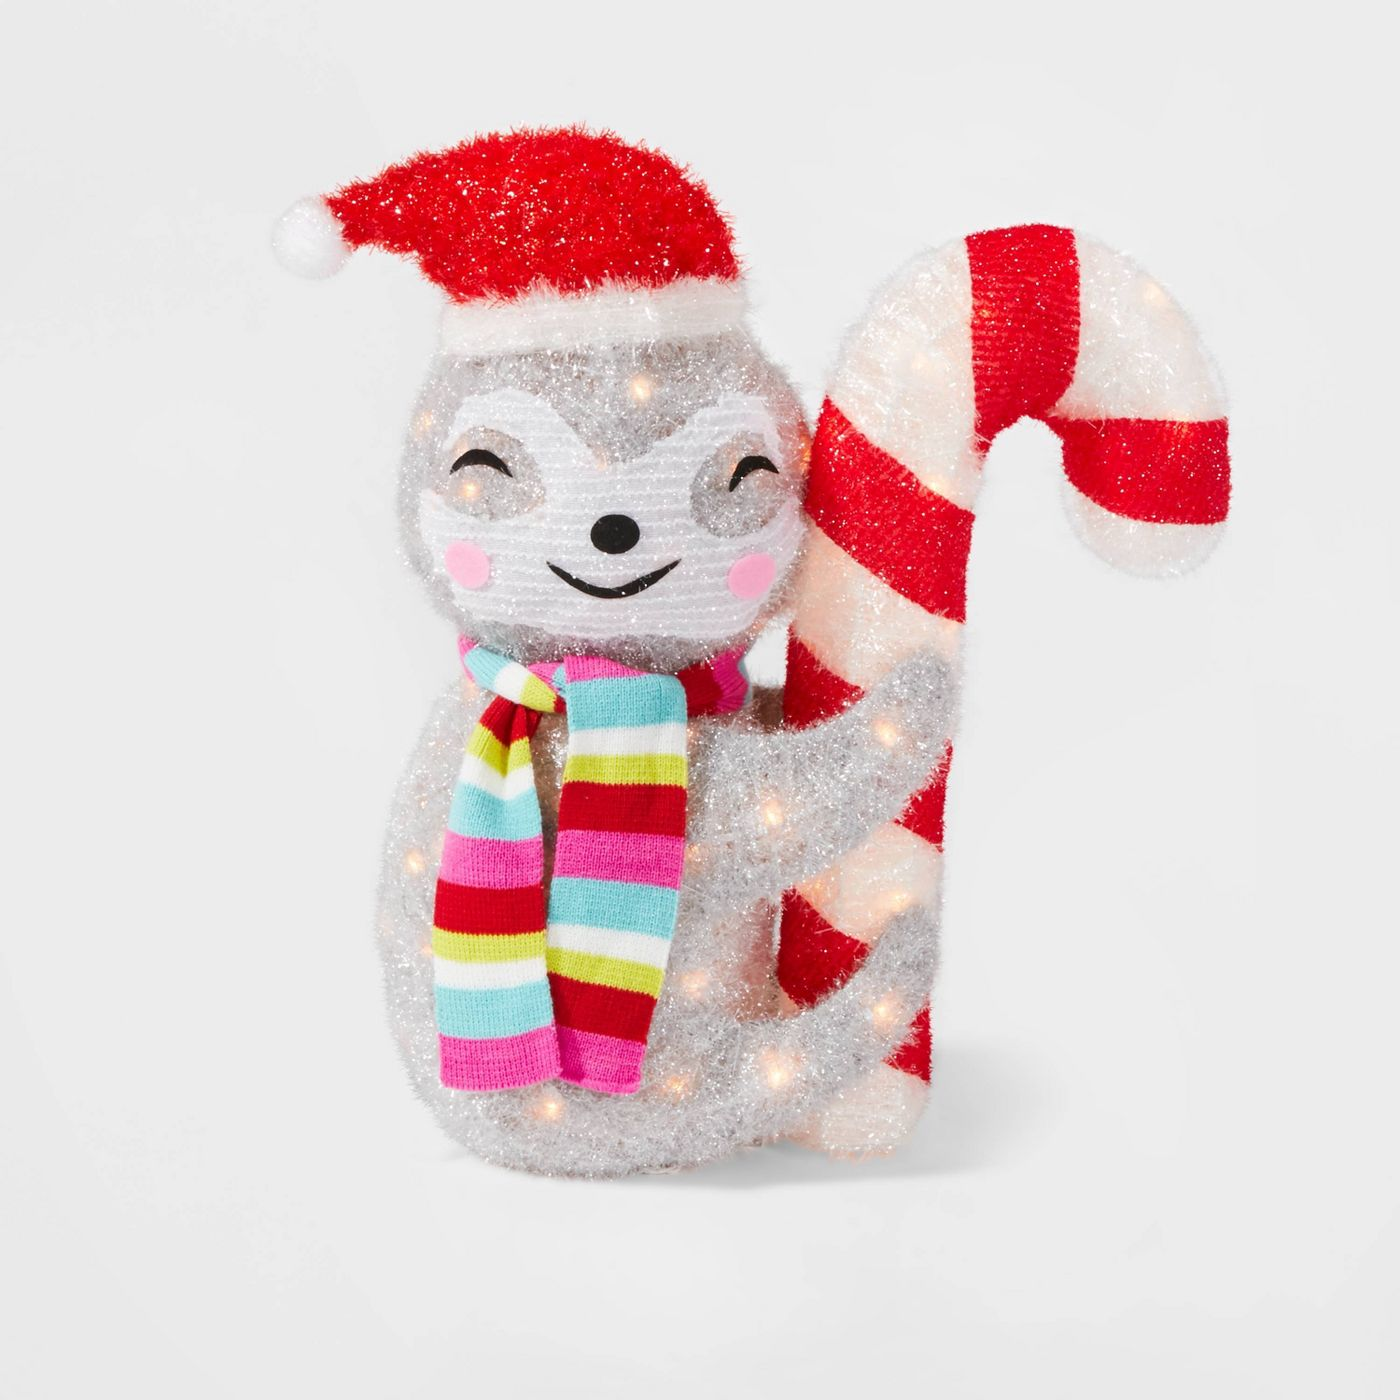 Christmas Outdoor Figurines & Inflatables UNDER $100